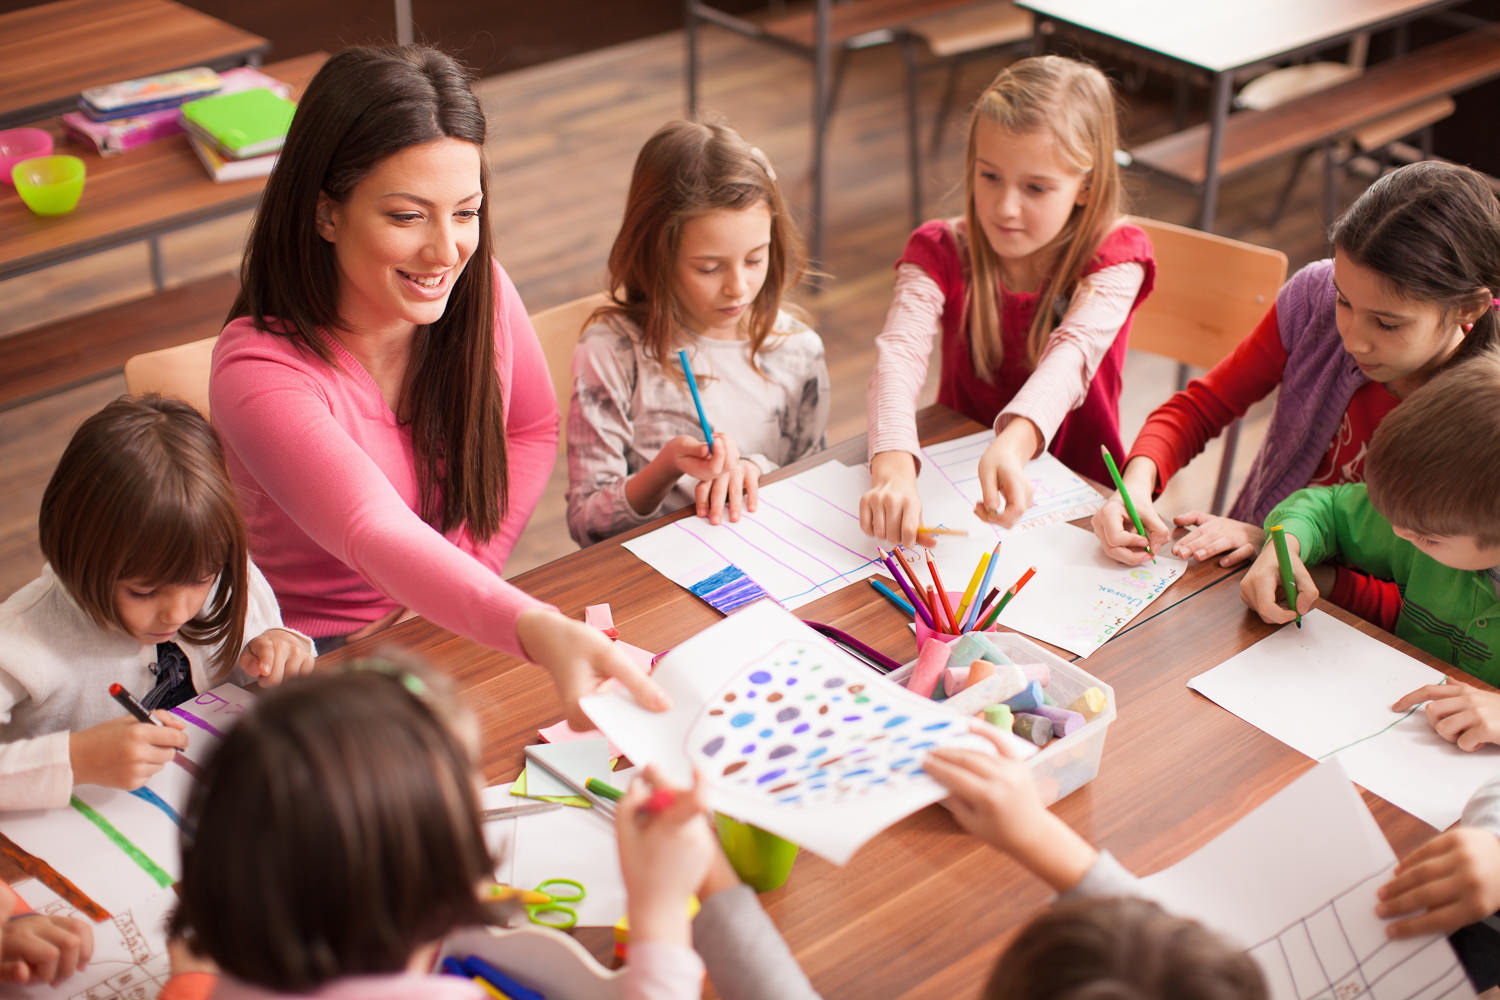 Children-Teacher-Smiling-Group-COMPASS for Courage.jpg